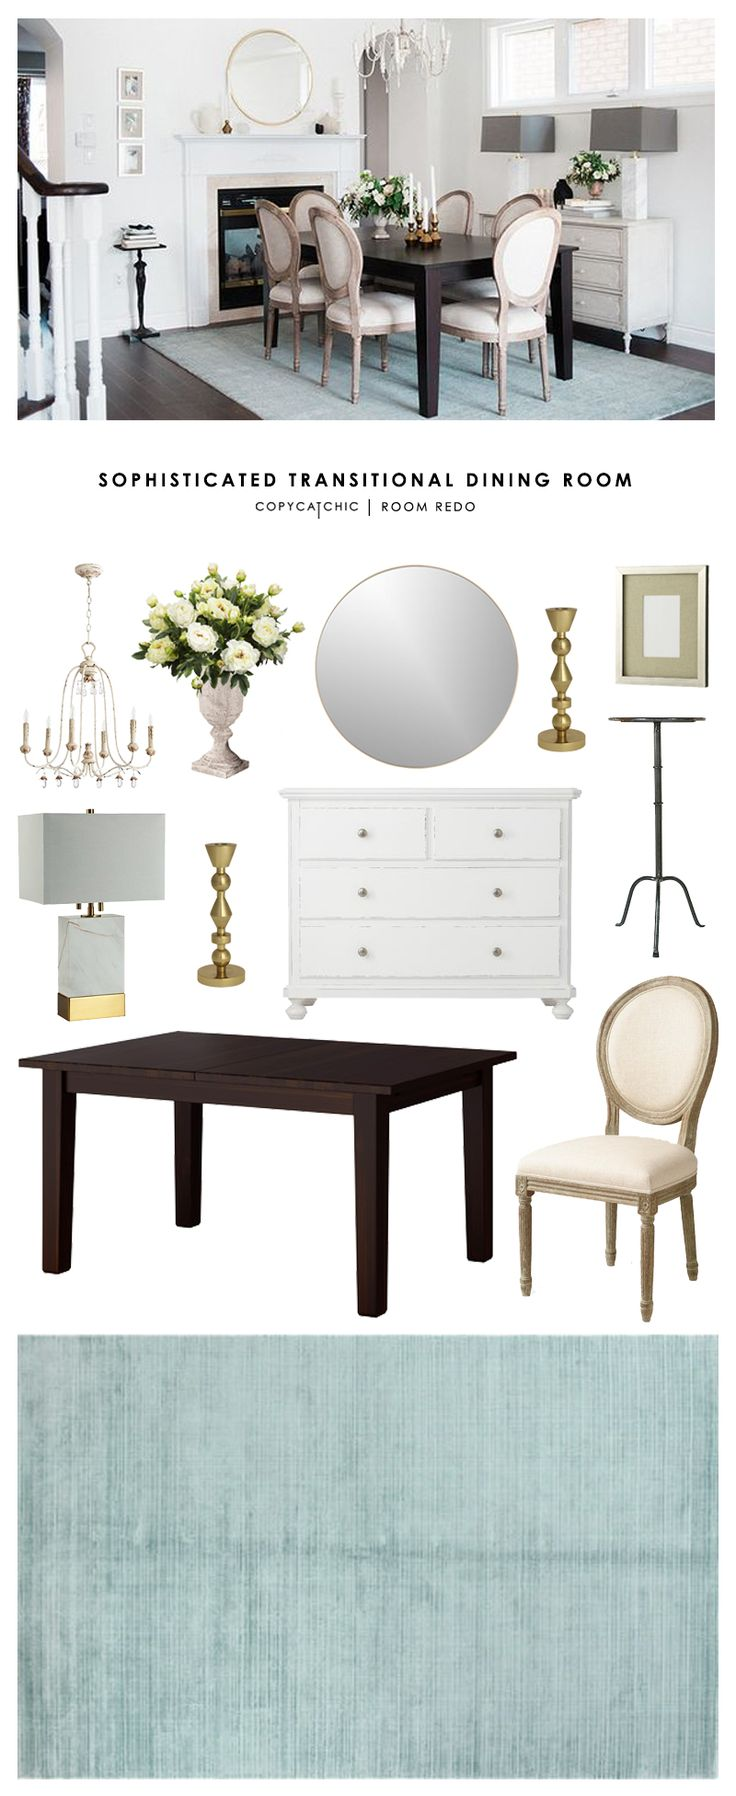 Copy Cat Chic Room Redo | Sophisticated Transitional Dining Room